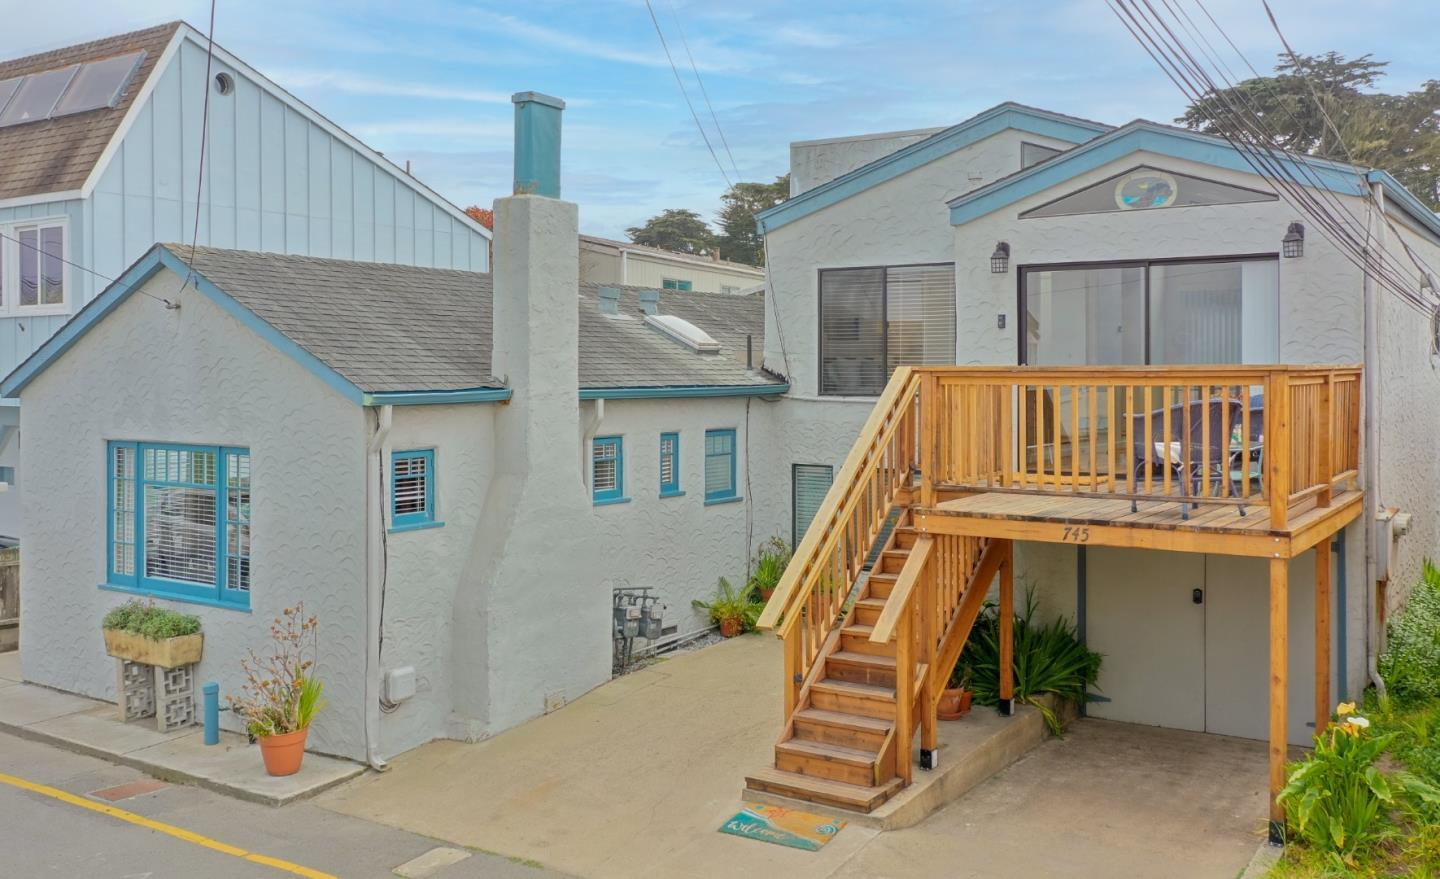 Property for sale at 743 & 745 Mermaid AVE, Pacific Grove,  California 93950